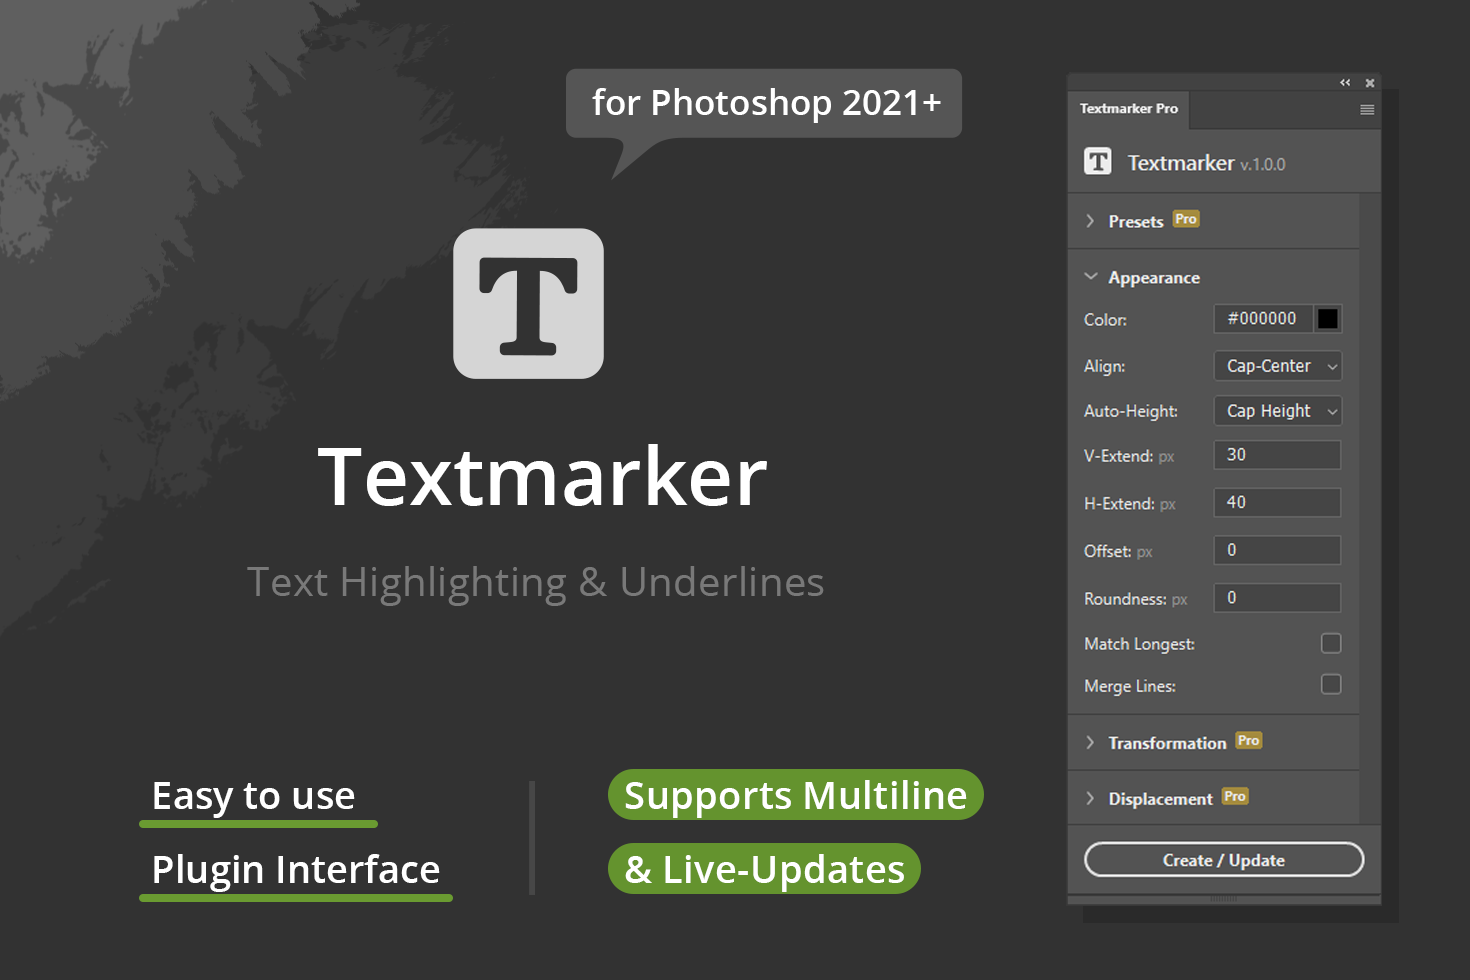 Textmarker for PS 2021+